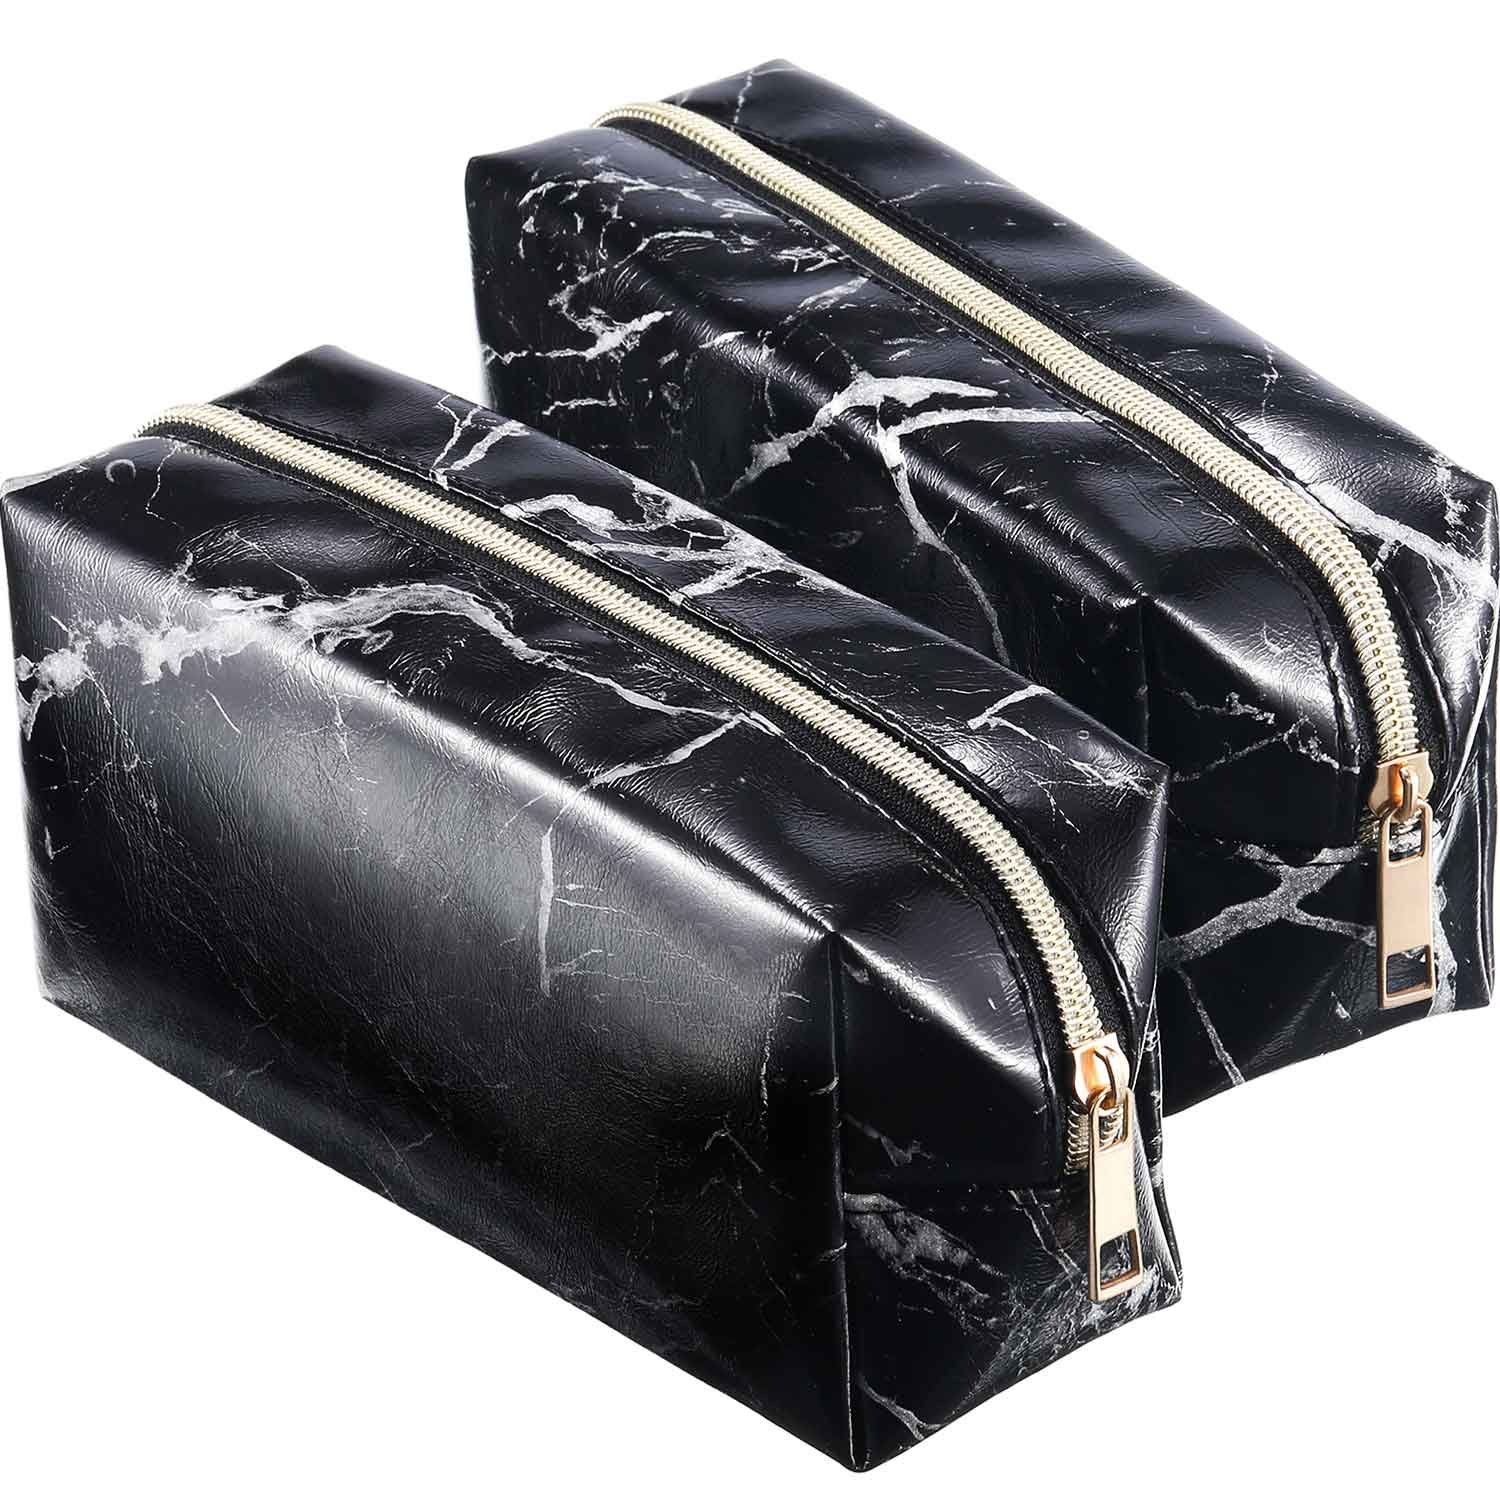 Mtlee 2 Pieces Cosmetic Toiletry Makeup Bag Pouch Gold Zipper Storage Bag Marble Pattern Portable Makeup Brushes Bag (Black)